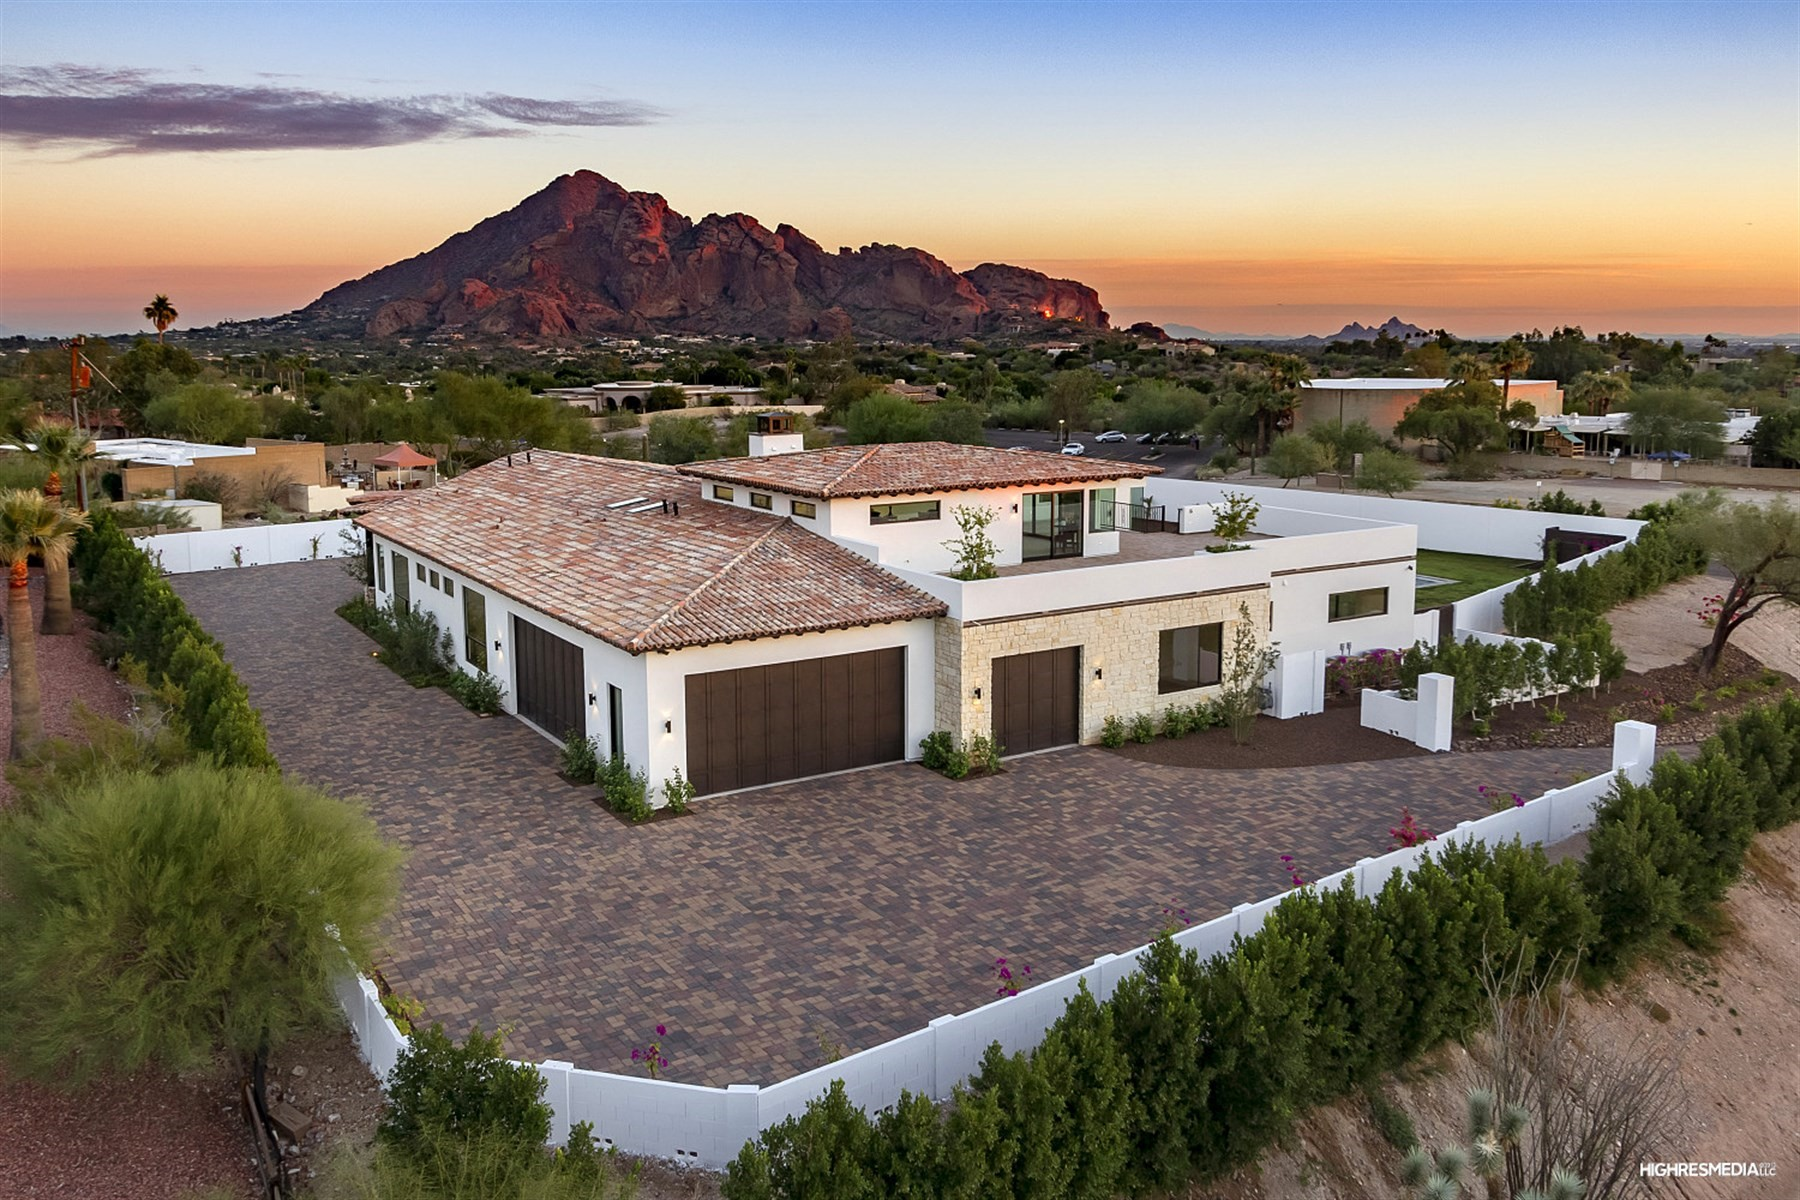 Maison unifamiliale pour l Vente à Modern masterpiece in the heart of the city 6501 N 40Tth Pl Paradise Valley, Arizona, 85253 États-Unis